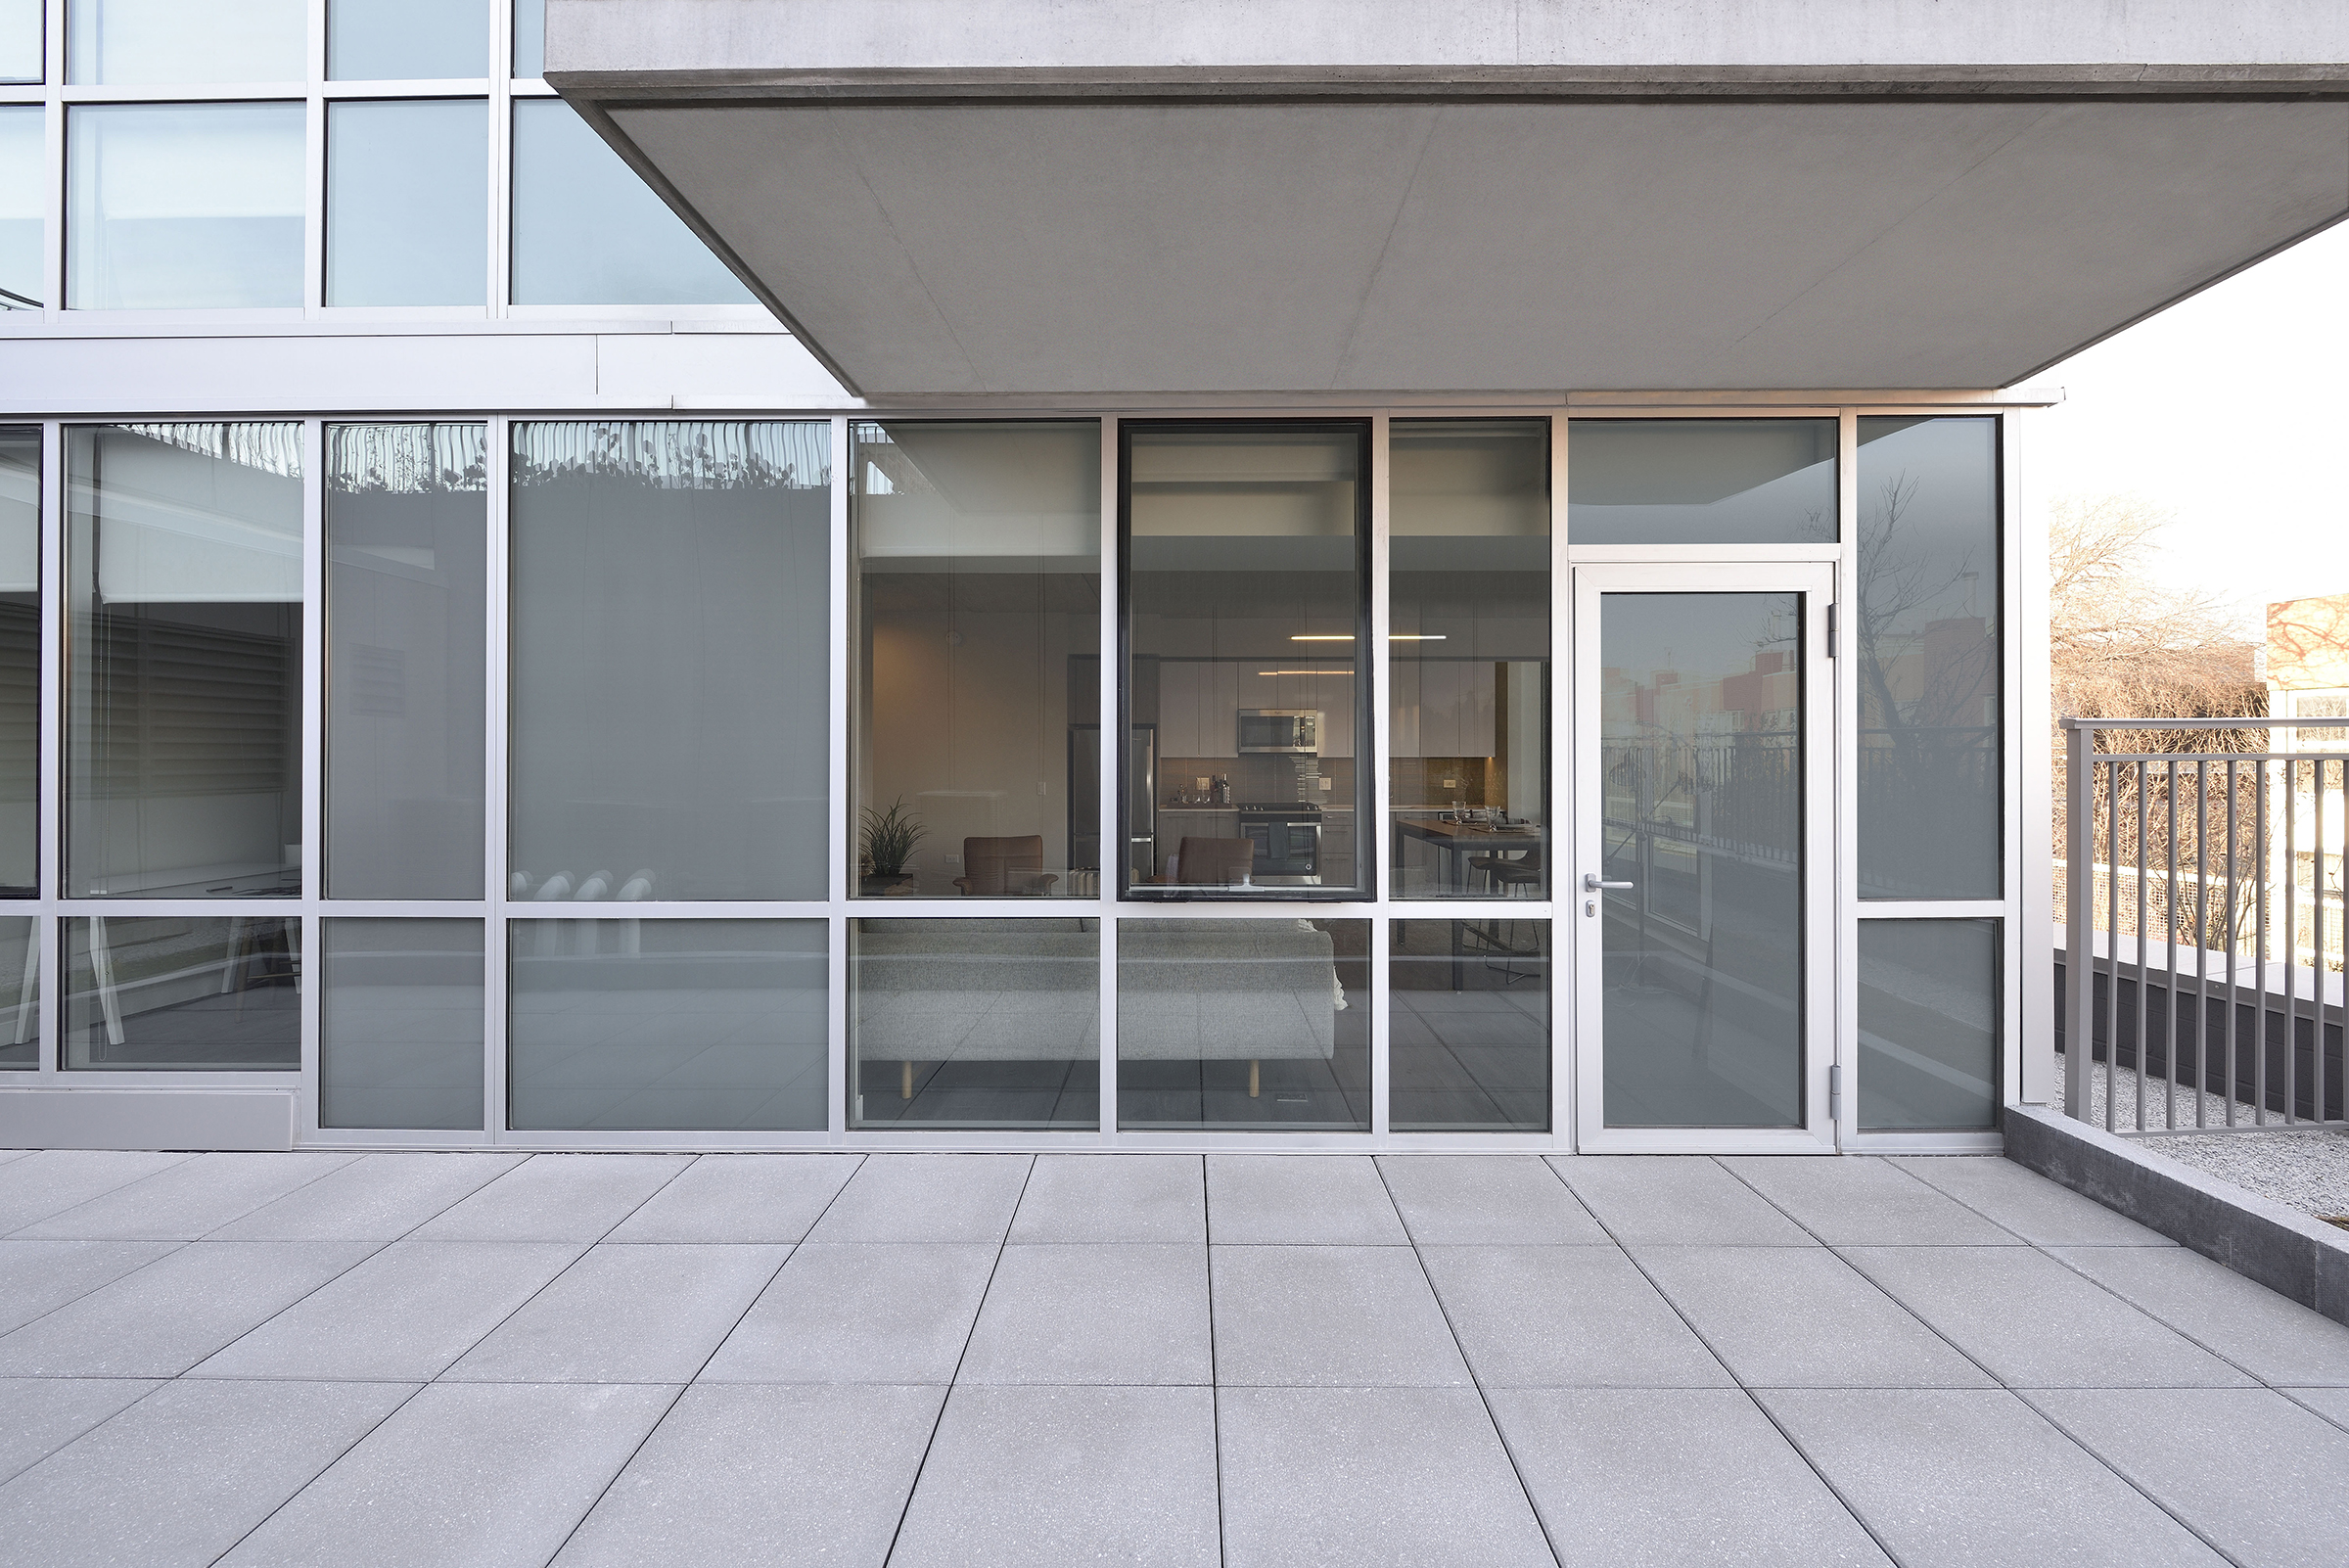 Tubelite inc category archives projects view full for High windows in house